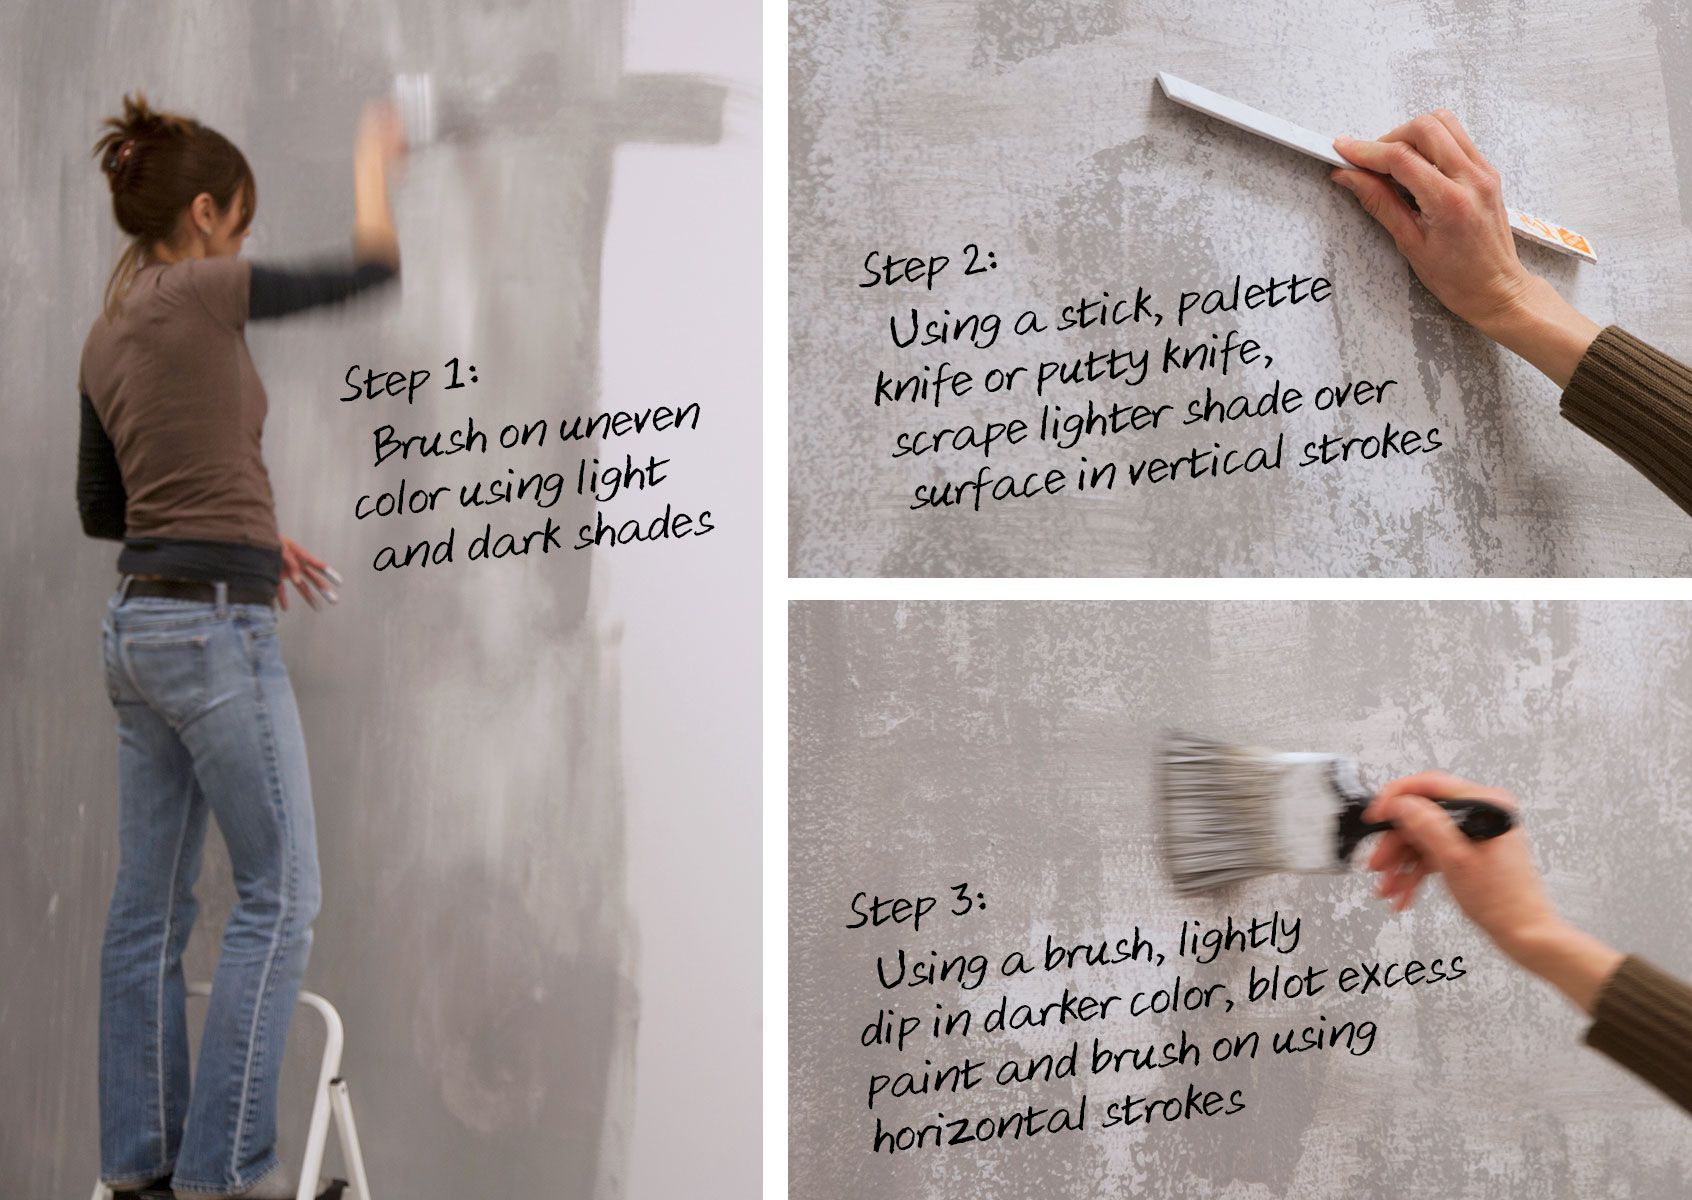 Diy Faux Painting diy home decor: how to paint a faux concrete wall finish — color